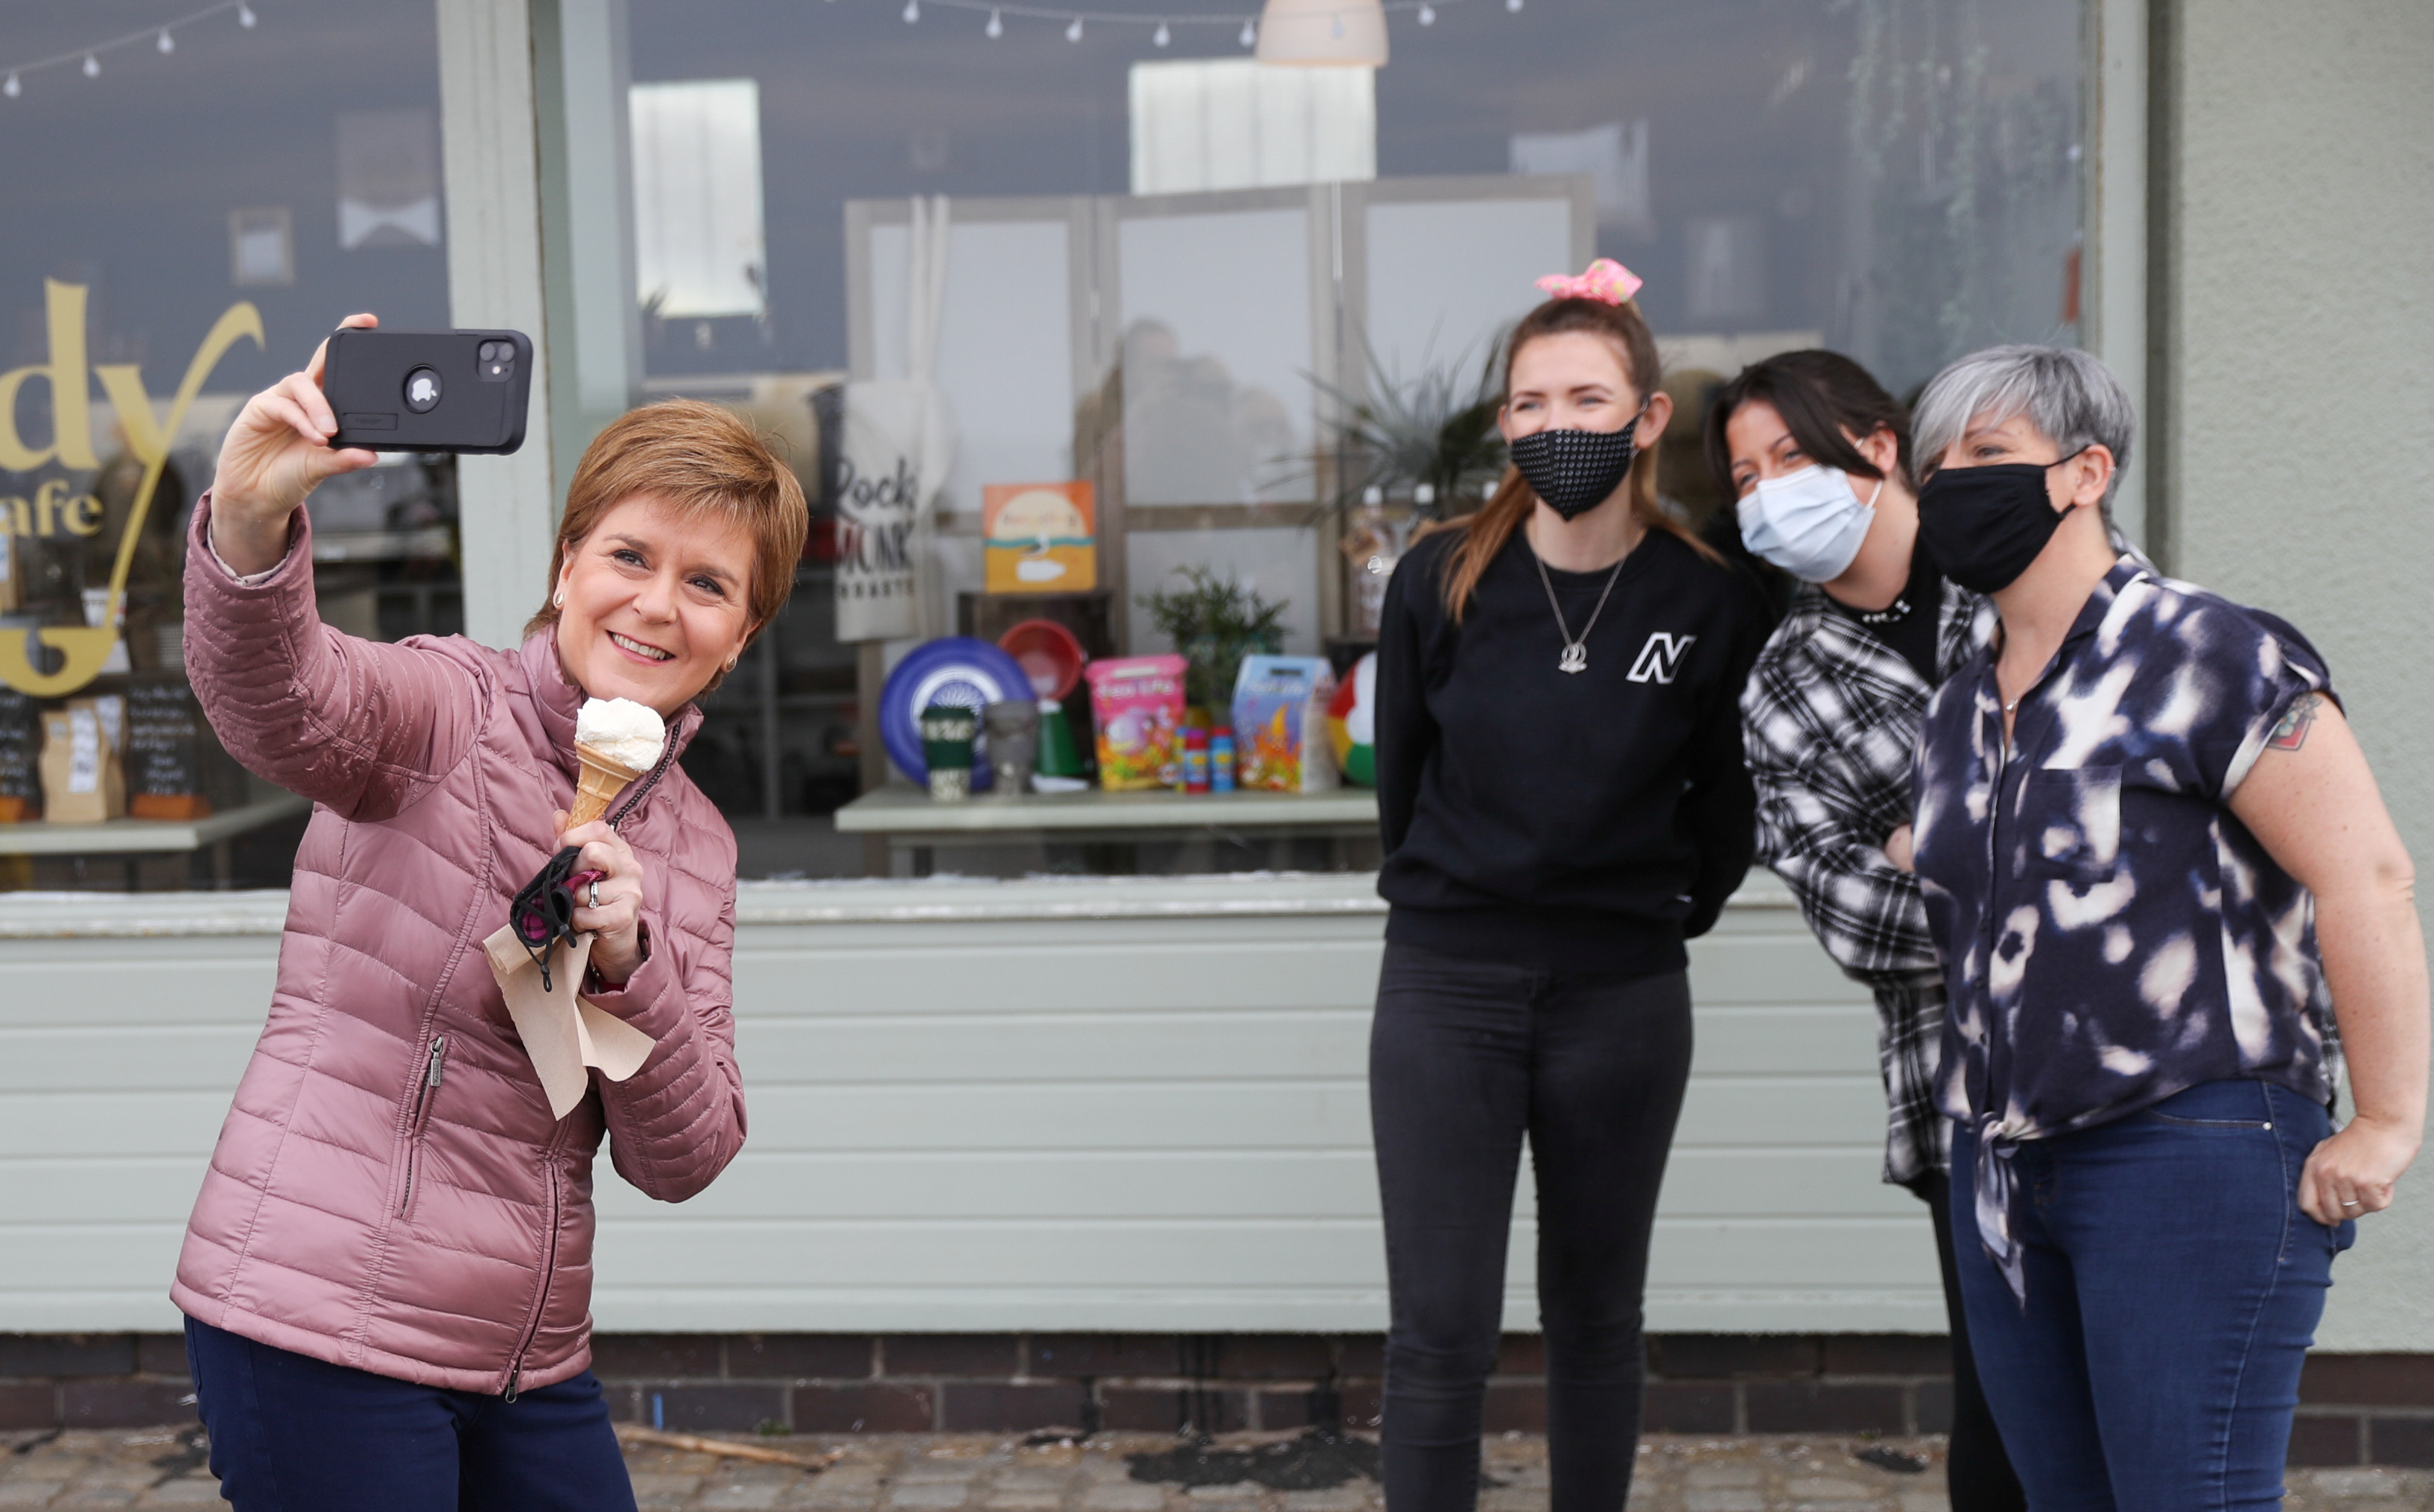 <p>Scotland's First Minister Nicola Sturgeon, leader of the Scottish National Party (SNP) (left), takes a photograph with three women in Ayr, South Ayrshire, during campaigning for the Scottish Parliamentary election. Picture date: Monday April 19, 2021.</p>